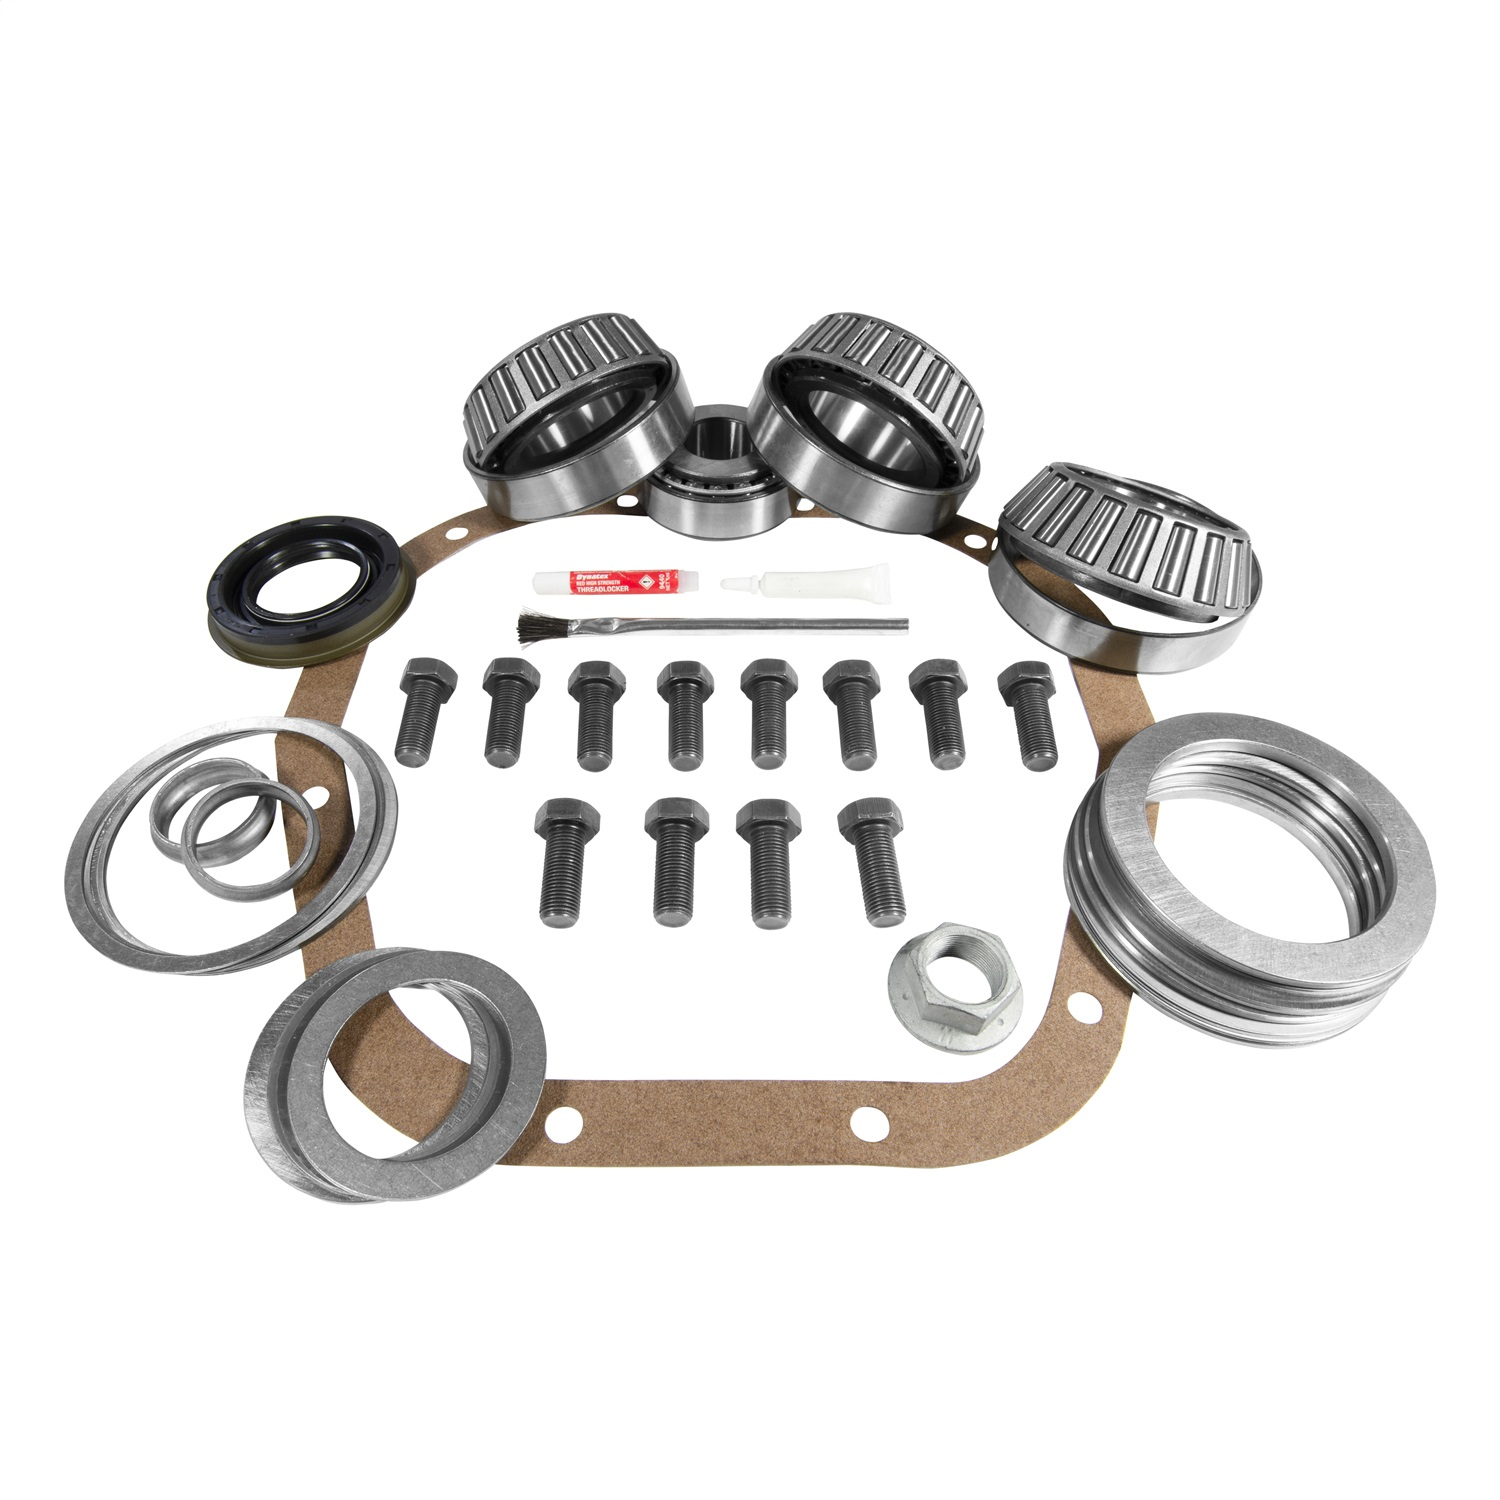 Yukon Gear & Axle YK F10.5-A Yukon Differential Master Overhaul Kit